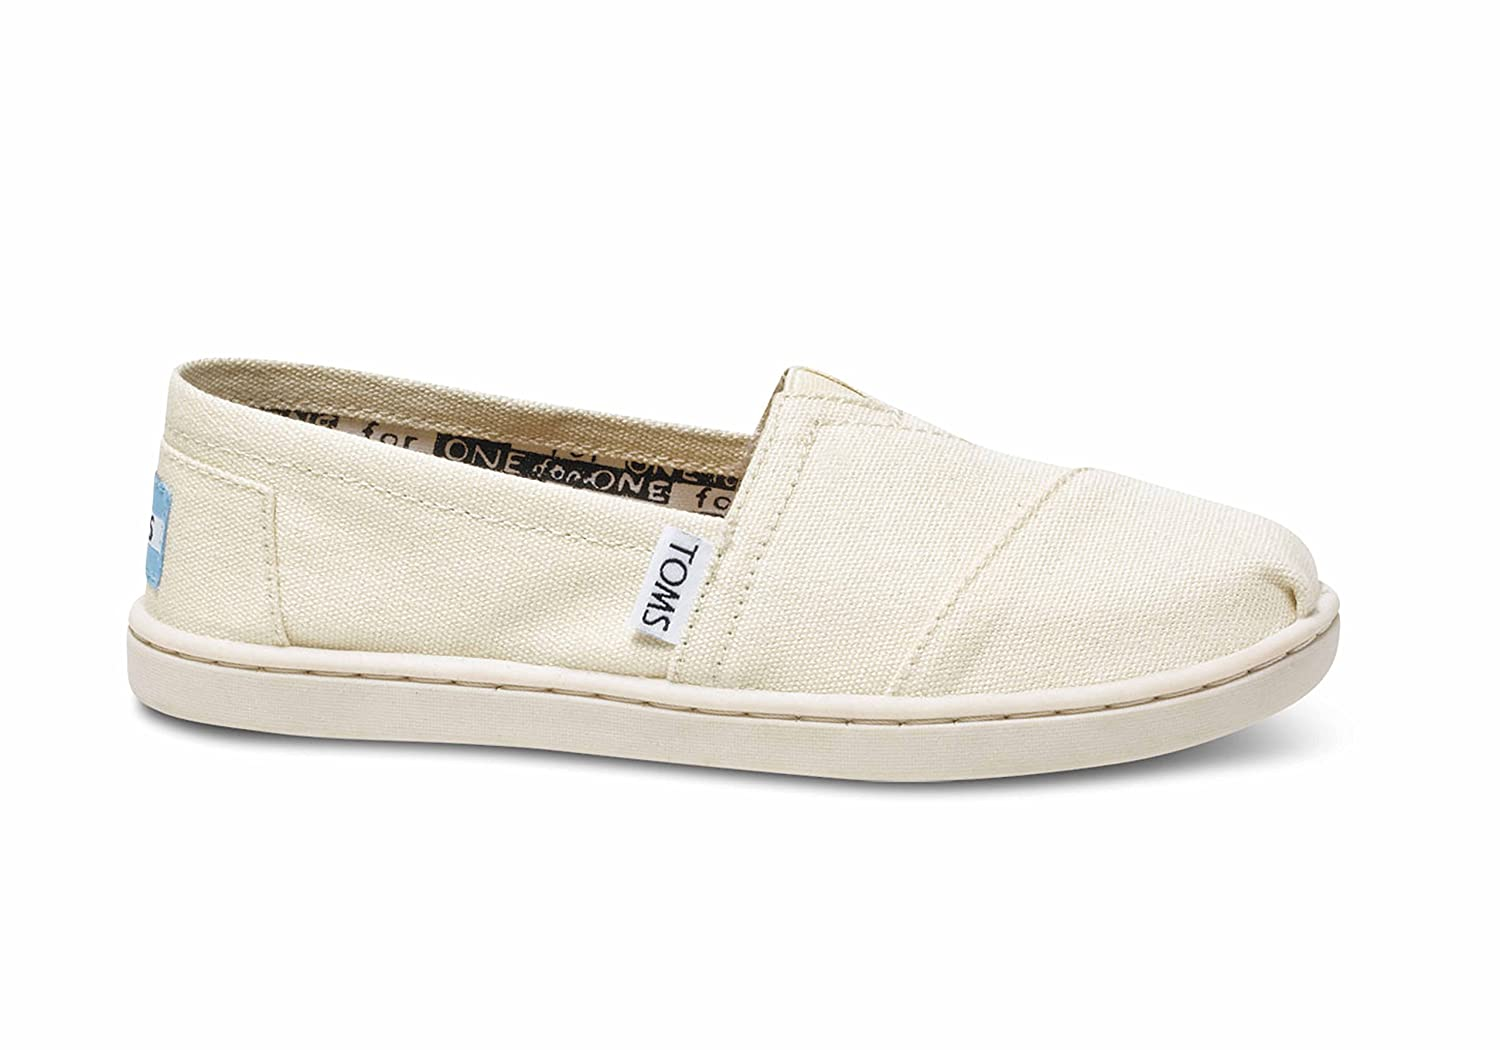 a06ea912df6c0 Toms - Youth Natural Canvas Classic Shoes, Size 12.5